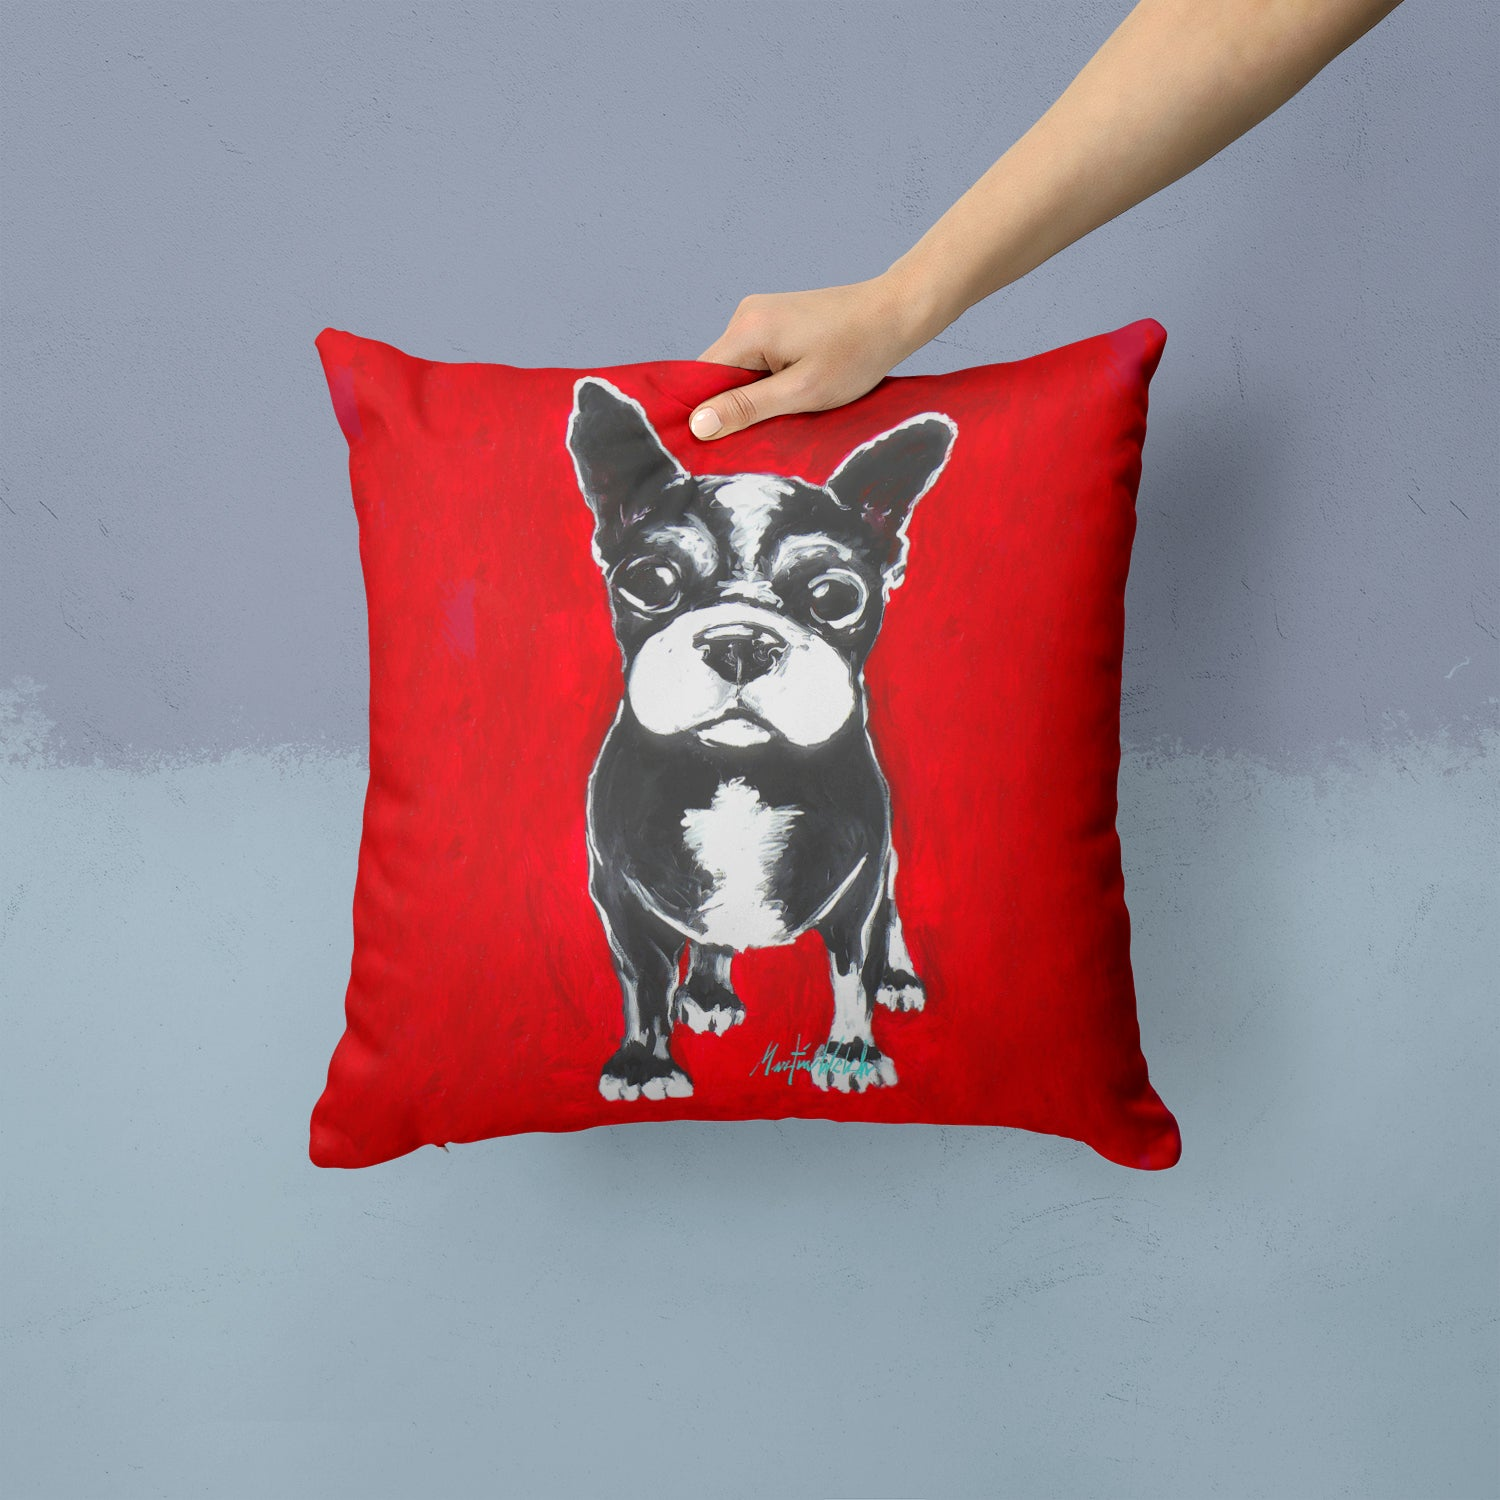 Boston Terrier Runt Fabric Decorative Pillow MW1314PW1414 by Caroline's Treasures